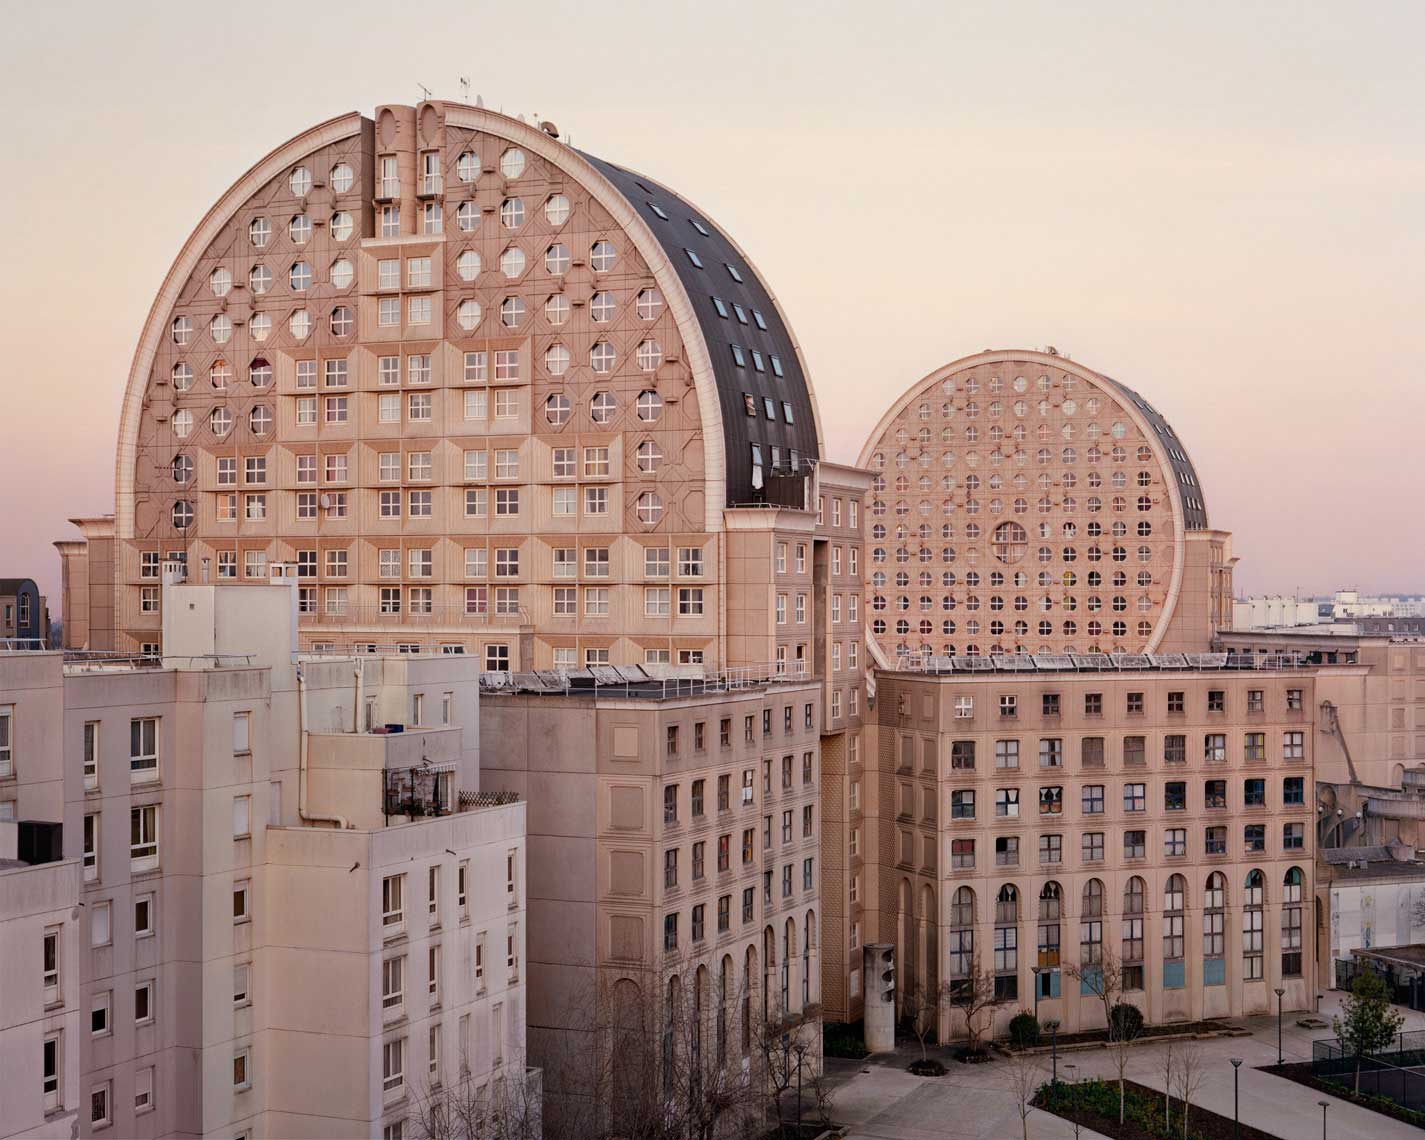 Laurent Kronental Documents the Life of Senior Citizens in Large Housing Projects | Yellowtrace